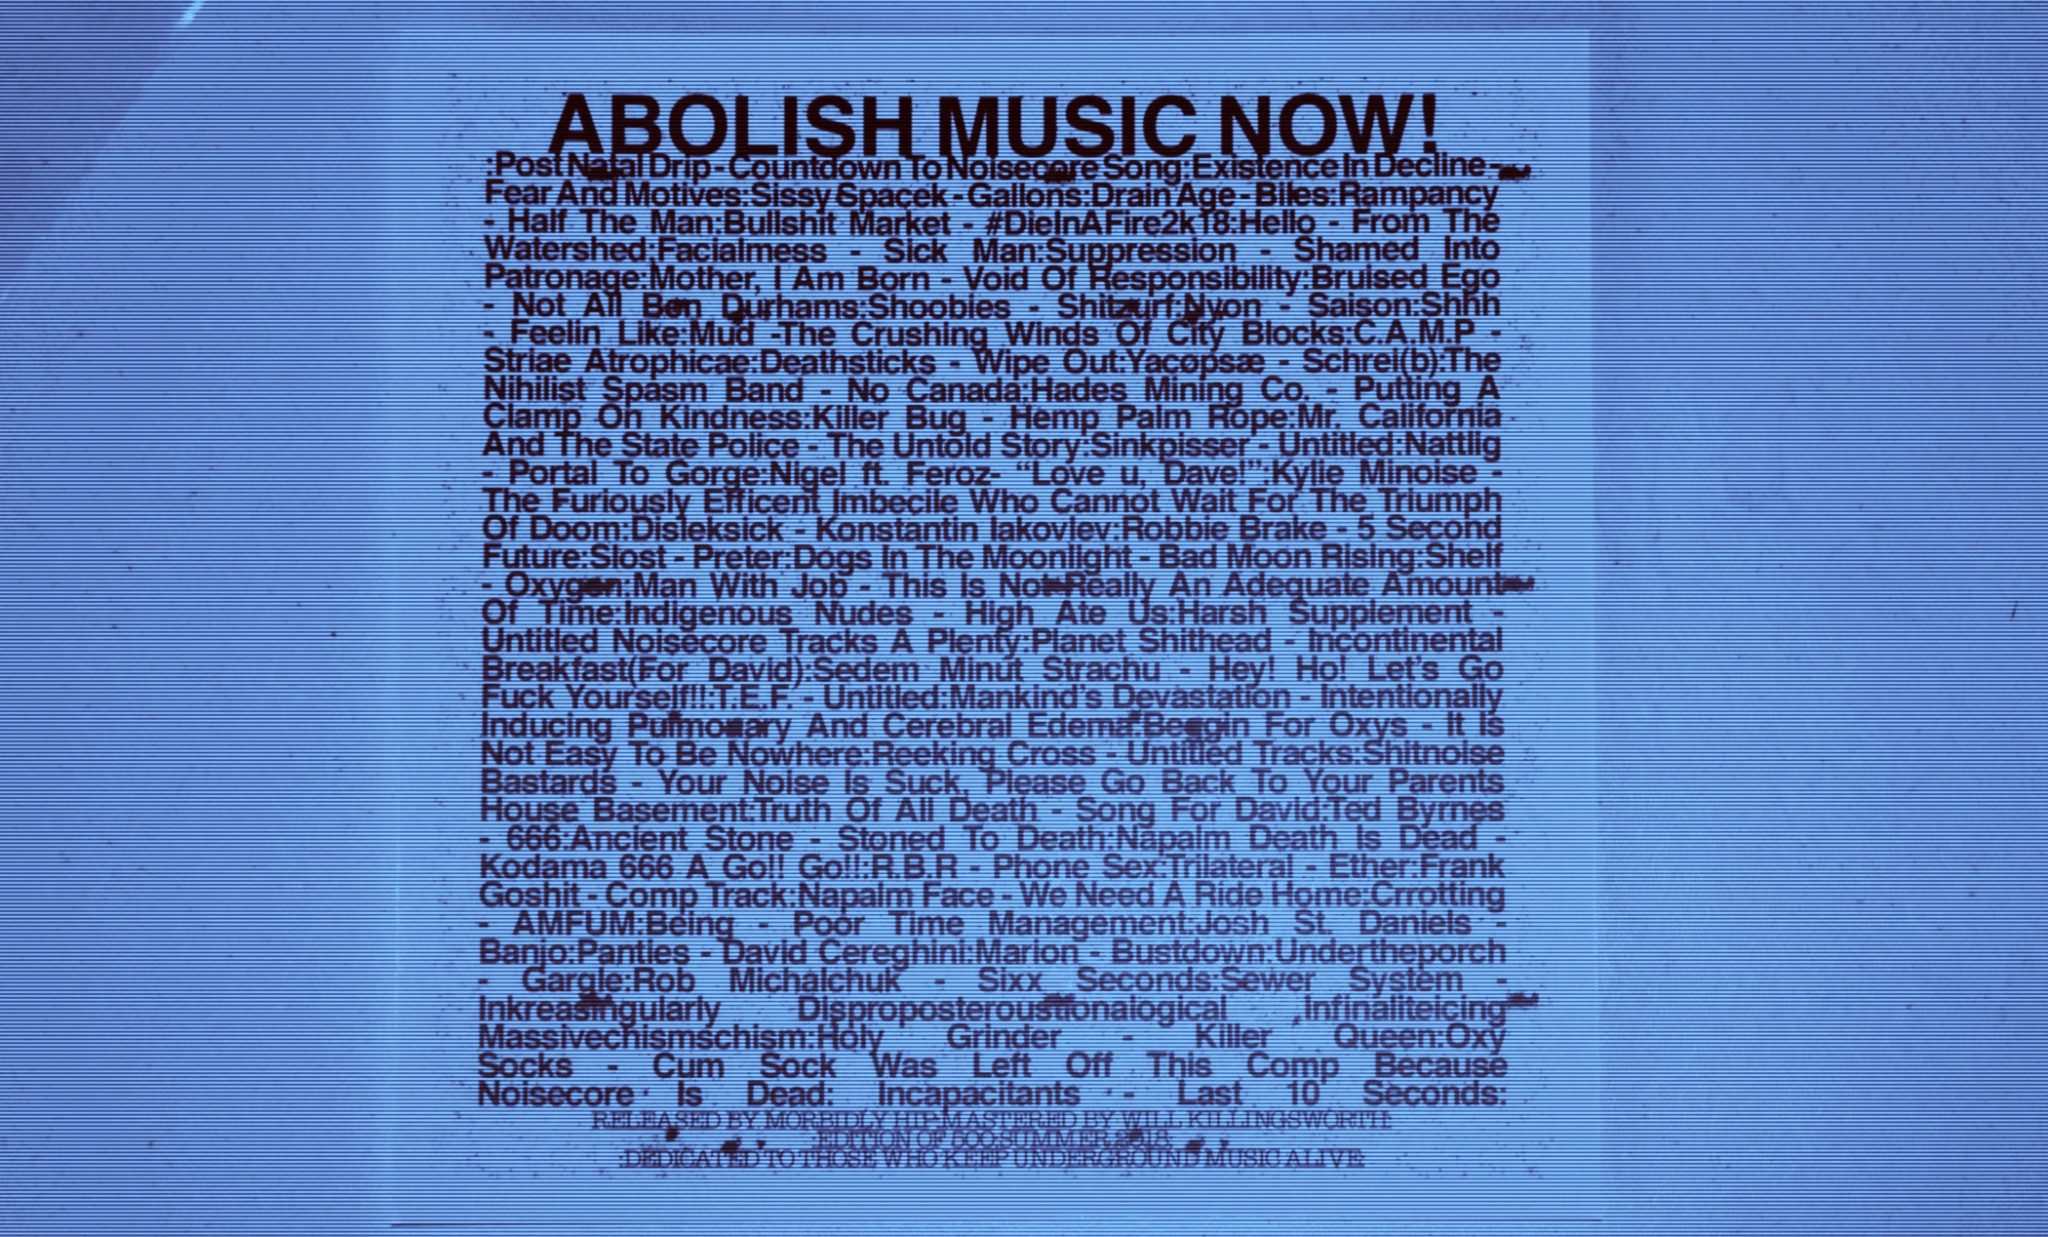 Abolish Music Now! boasts an impressive lineup of 60 acts.